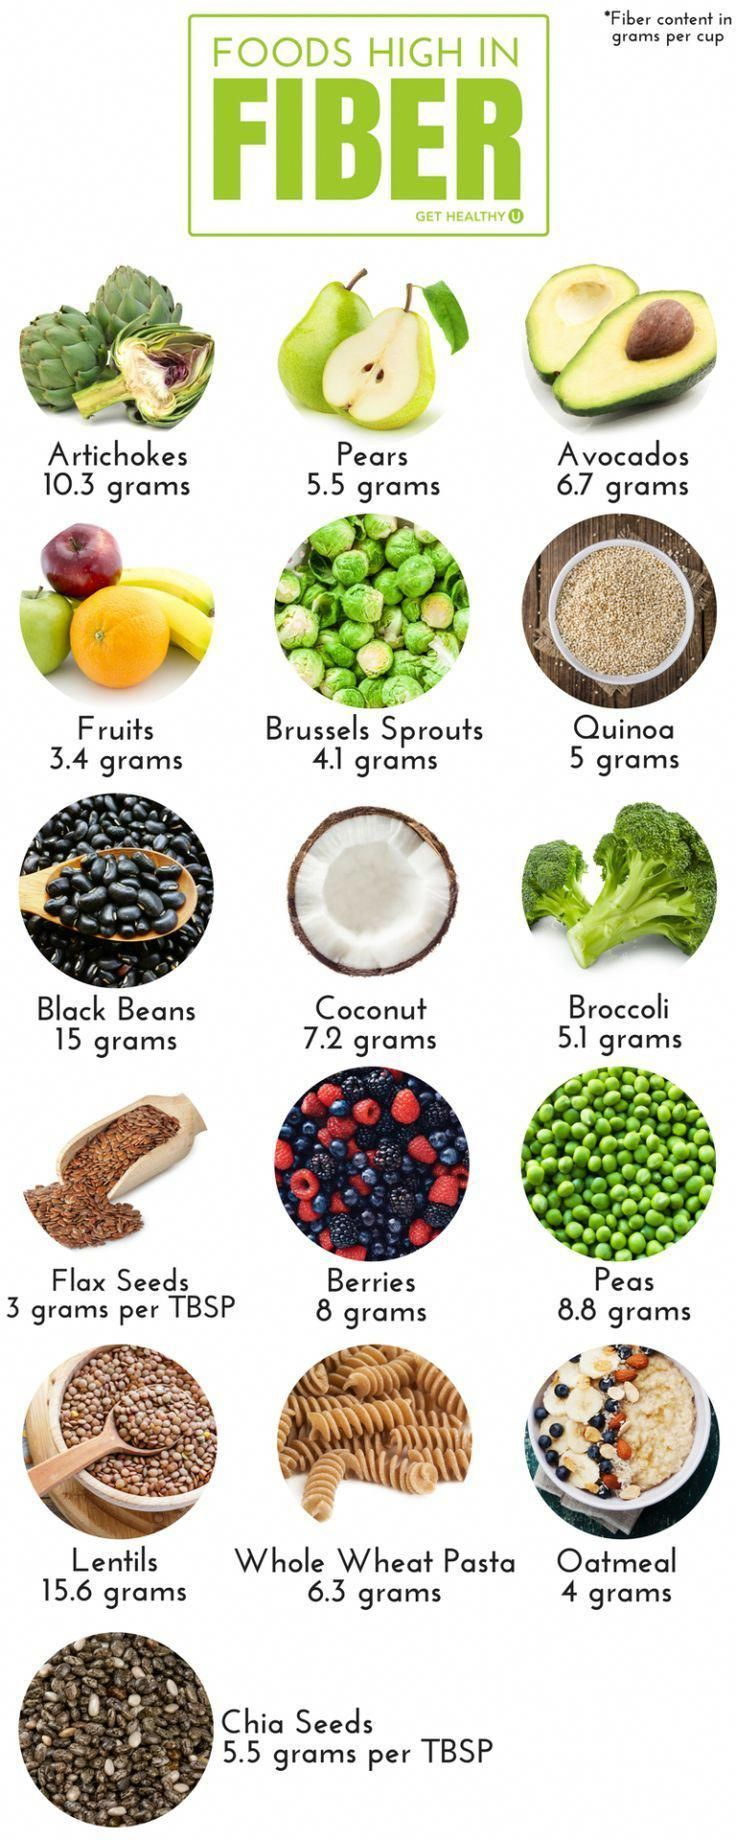 Check out these foods high in fiber to help cleanse and